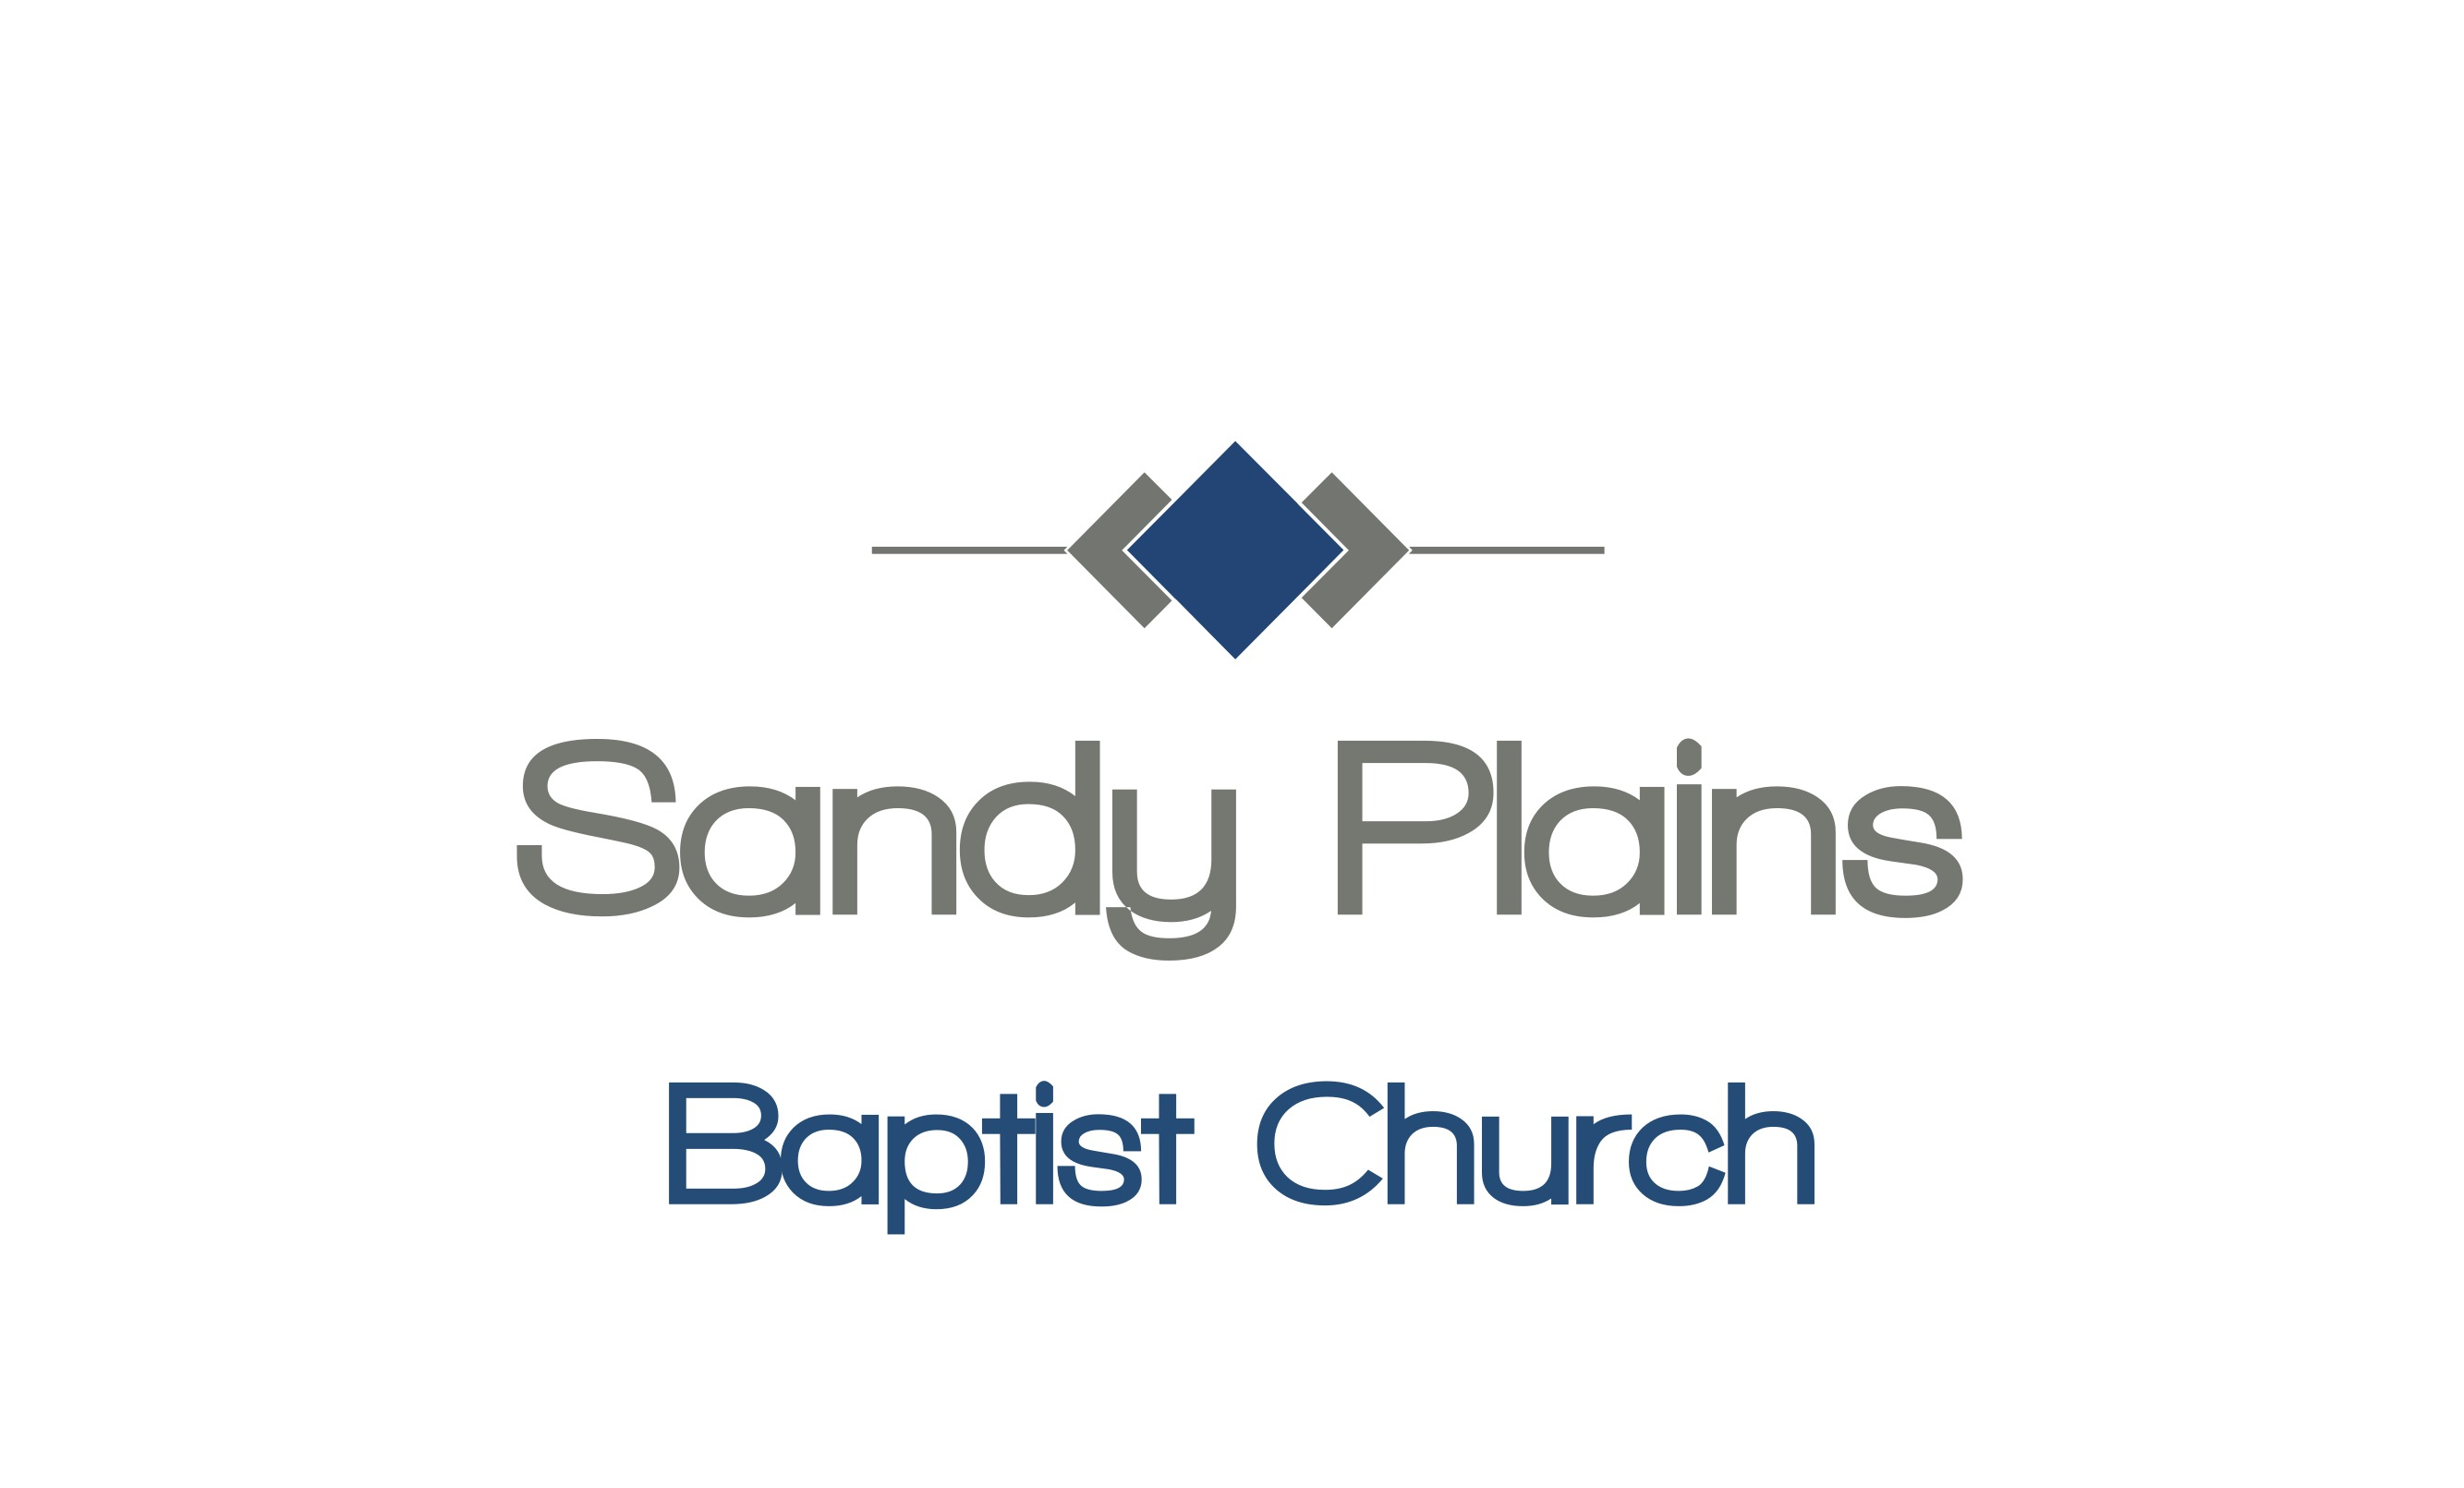 Sandy Plains Baptist Church - Gastonia churches, Clover churches, Belmont